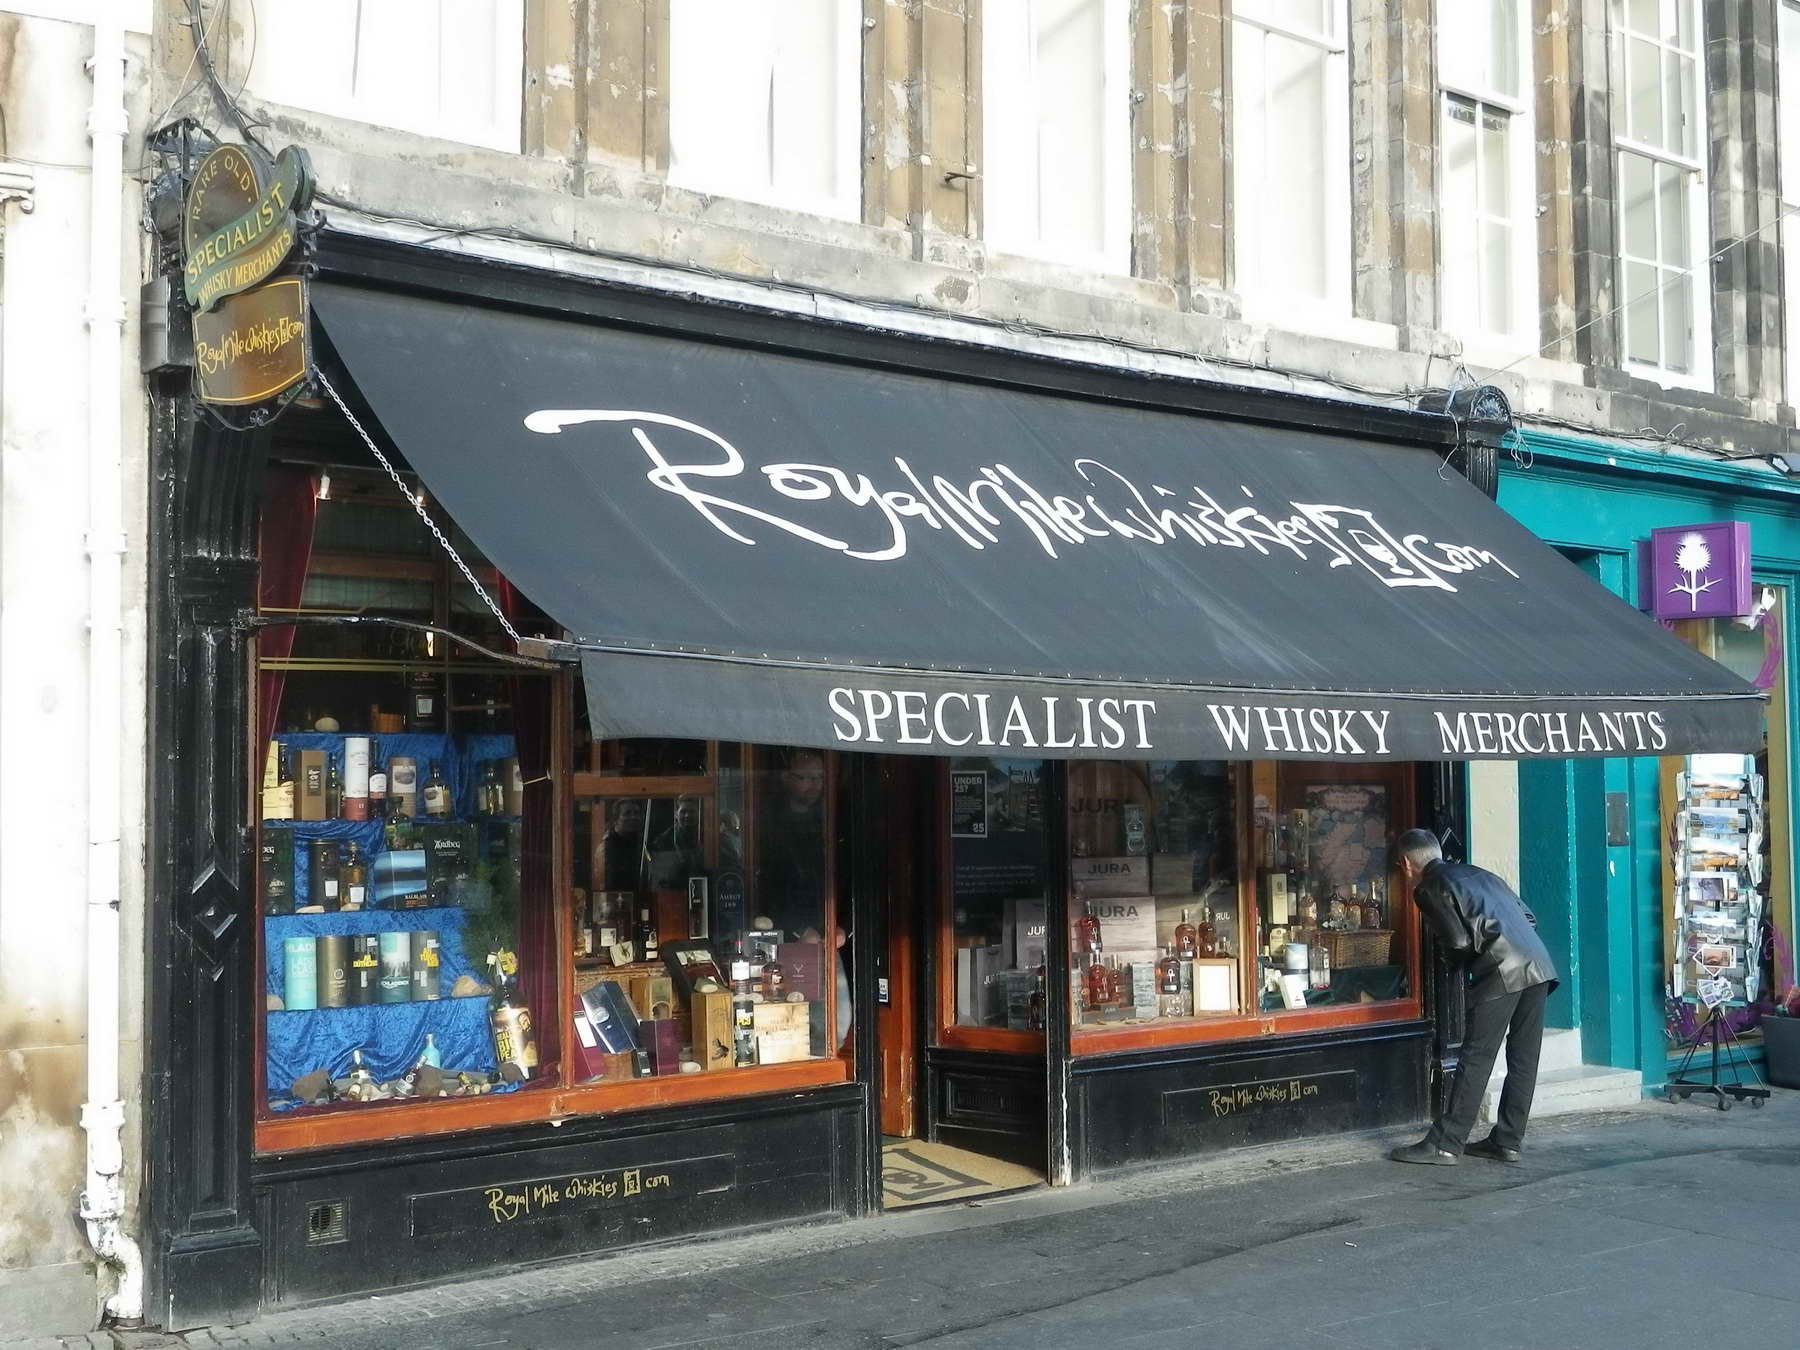 https://static.blog4ever.com/2014/01/761430/Royal-Mile-whisky.jpg